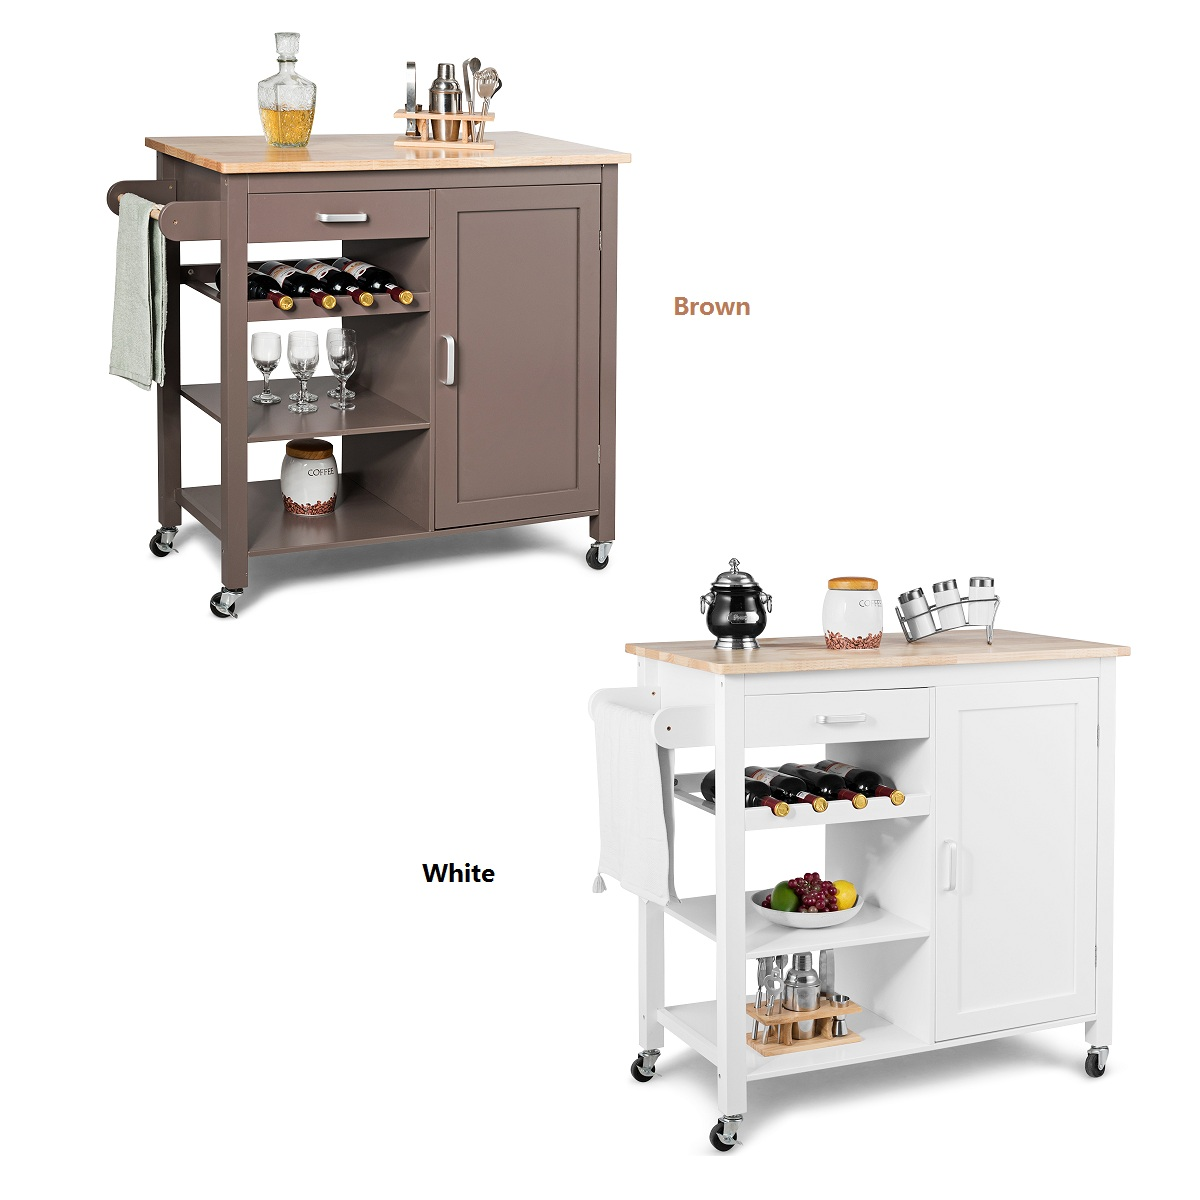 Costway Kitchen Island Trolley Cart Wood Top Storage Cabinet W/ Wine Rack & Shelf WhiteBrown